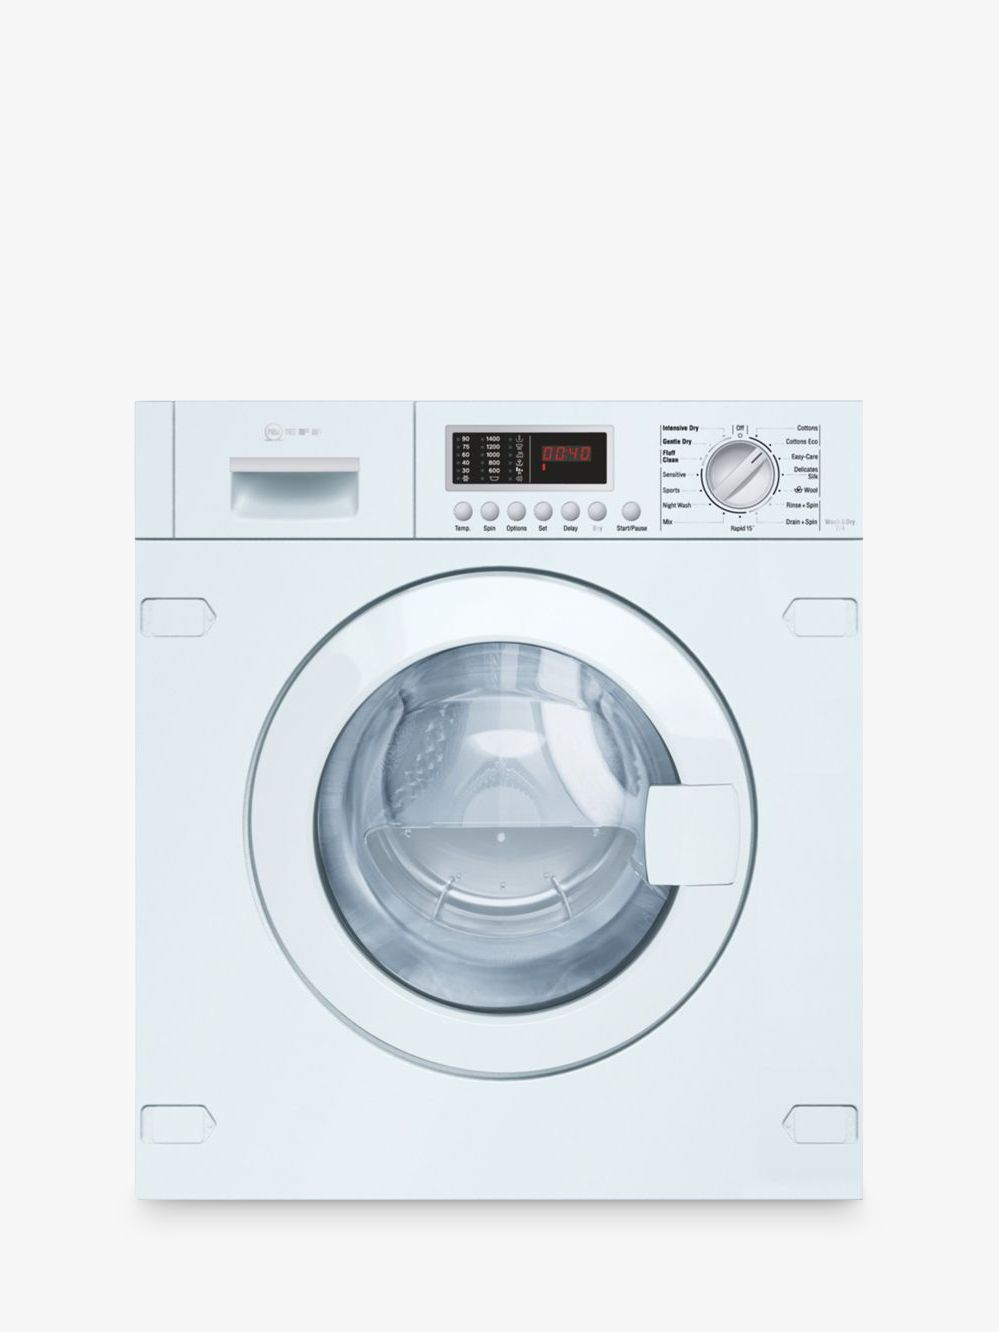 NEFF Neff V6540X1GB Integrated Washer Dryer, 7kg Wash/4kg Dry Load, B Energy Rating, 1400rpm Spin